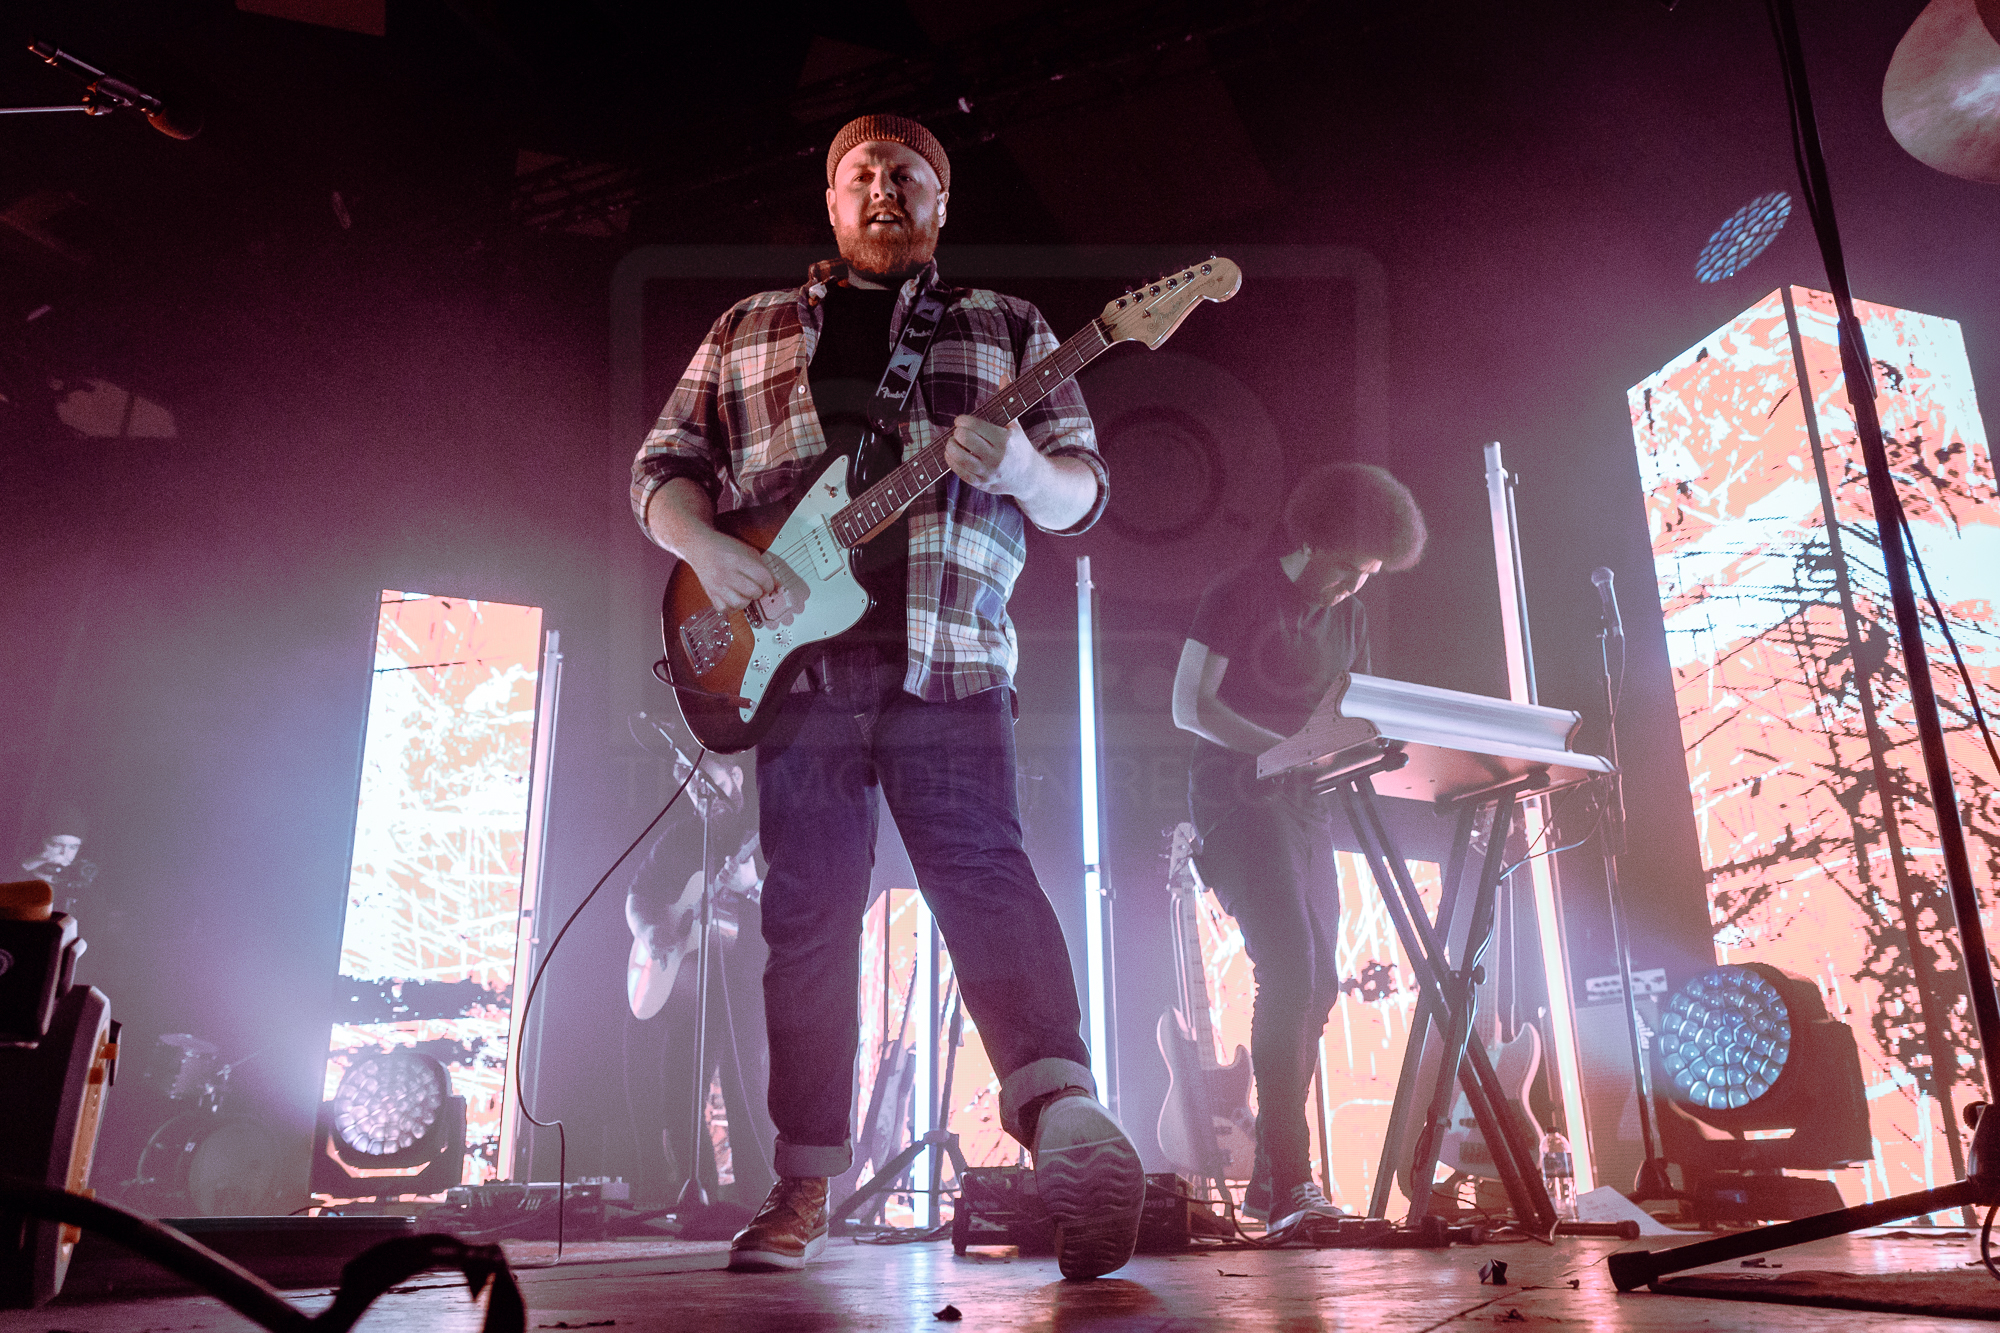 TOM WALKER PERFORMING AT GLASGOW'S BARROWLAND BALLROOM - 26.04.2019  PICTURE BY: KENDALL WILSON PHOTOGRAPHY